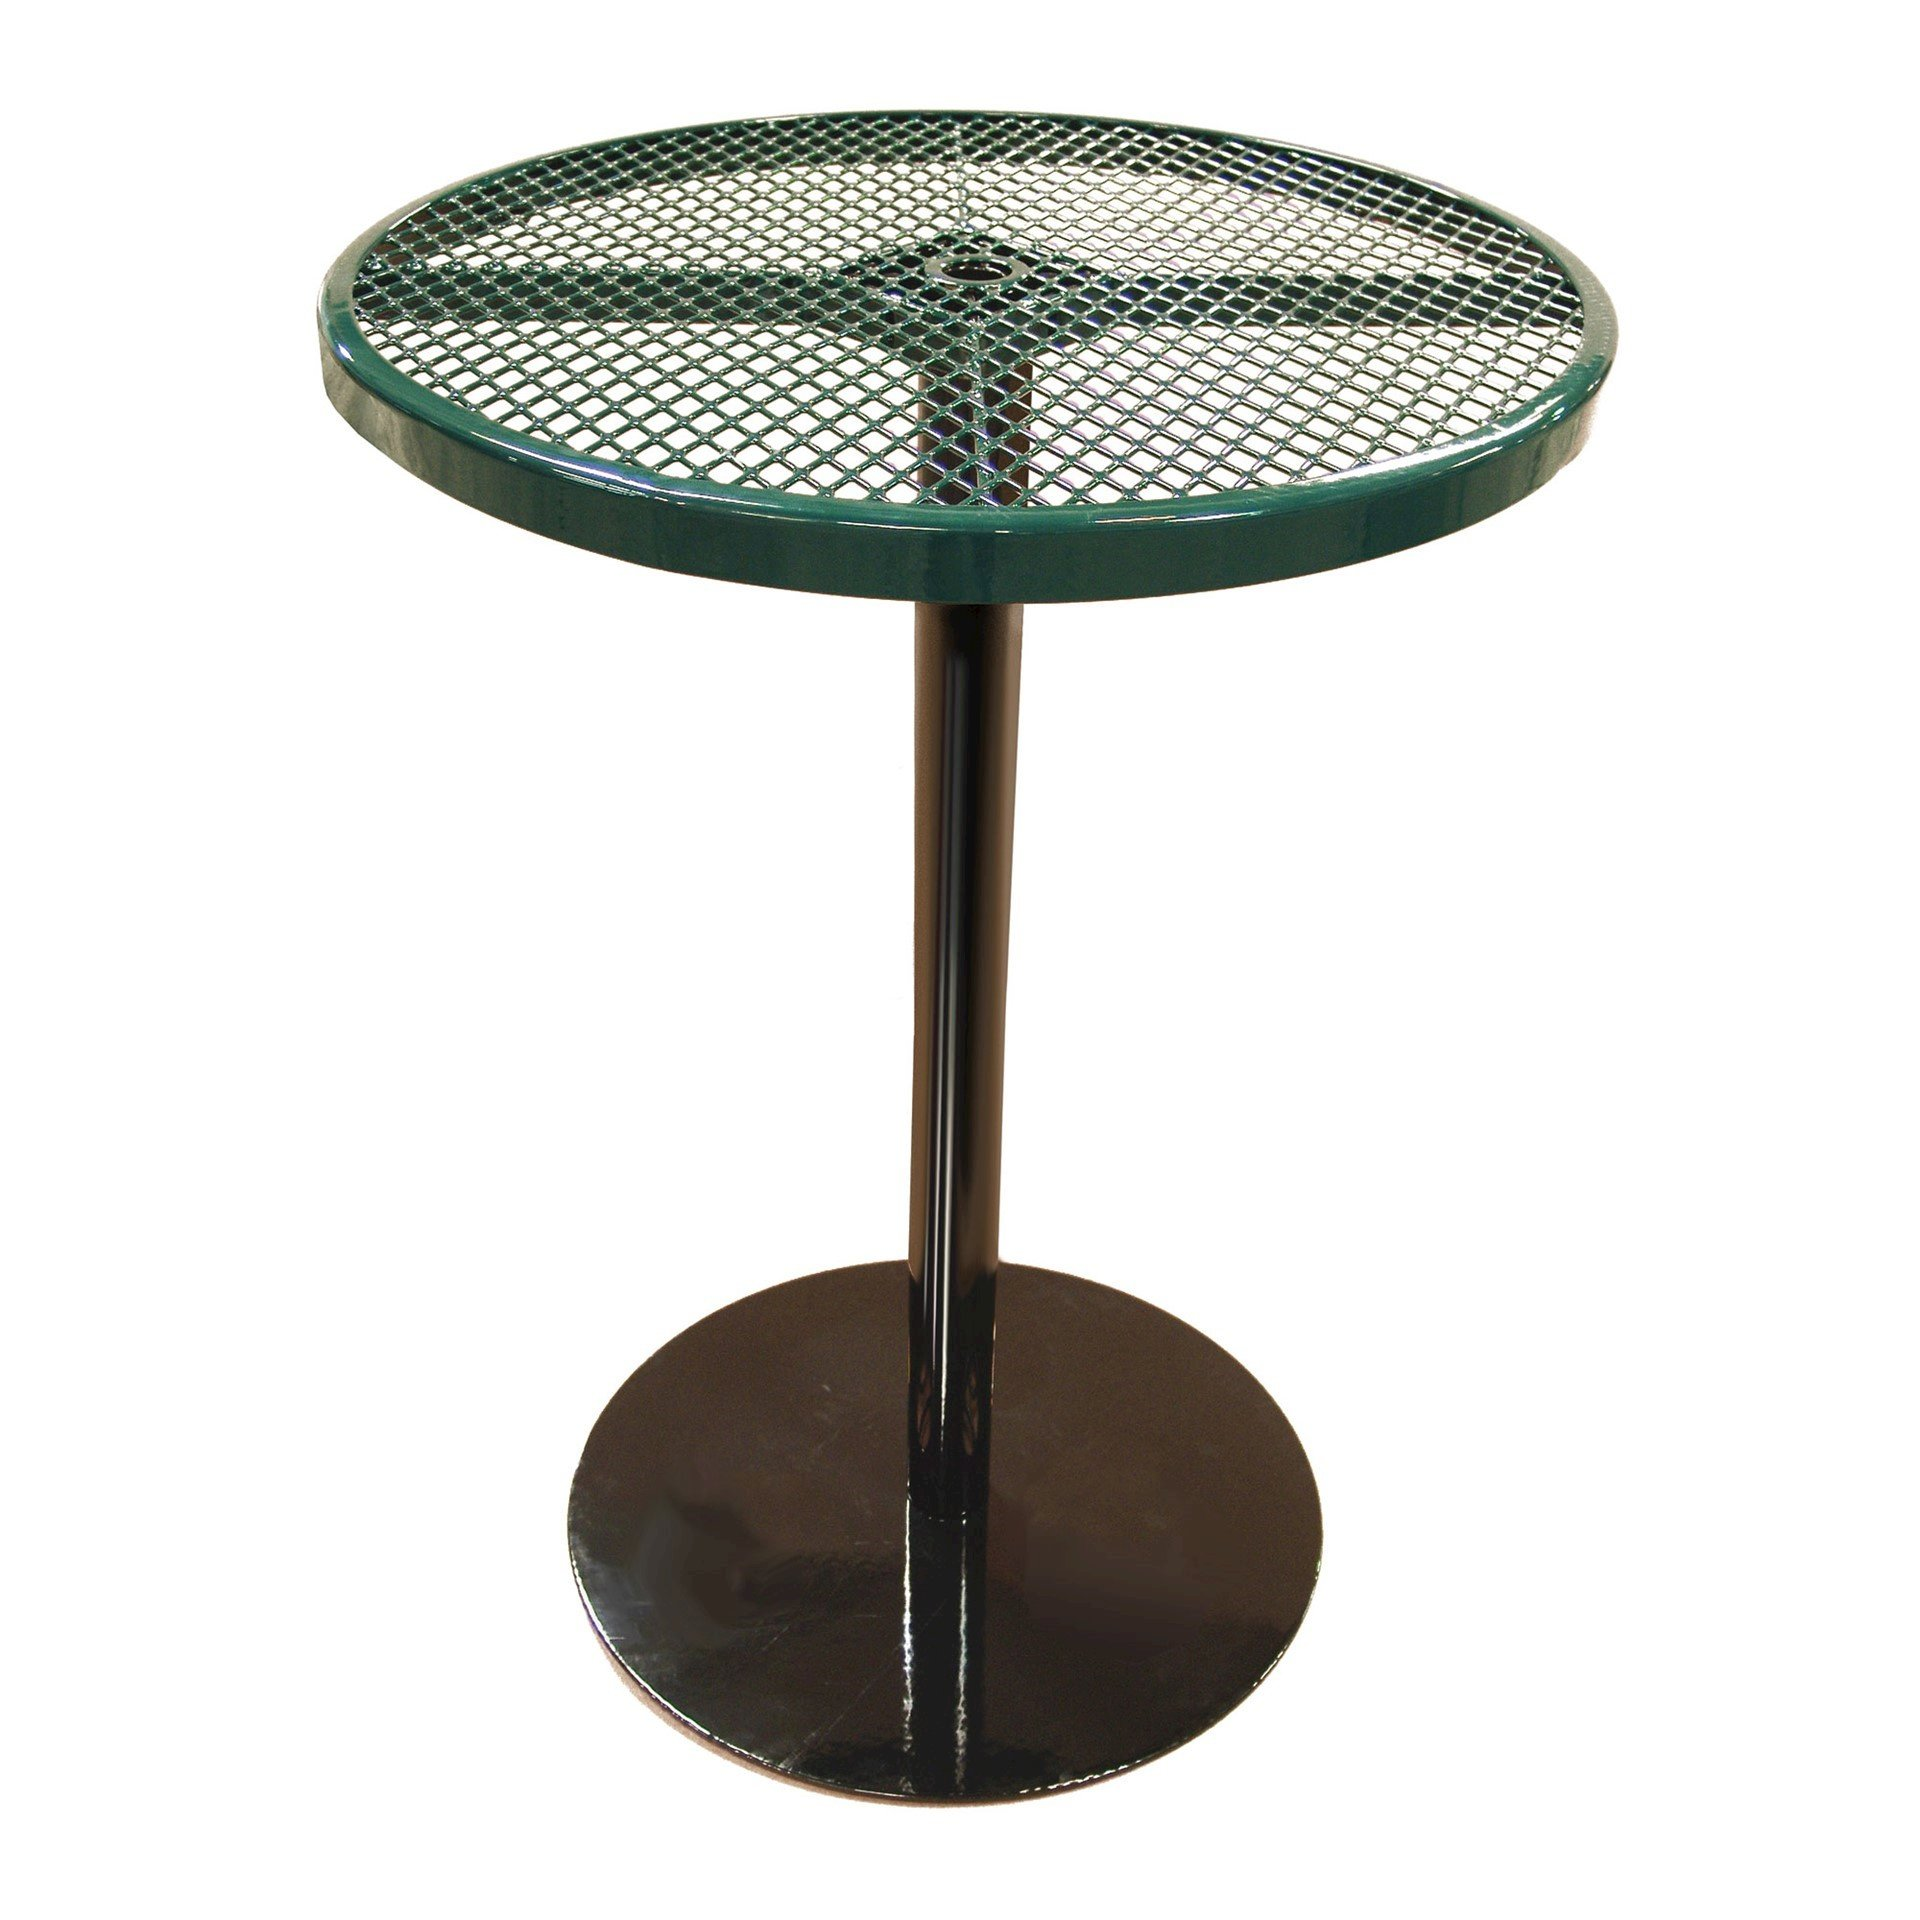 36 Quot Perforated Round Patio Thermoplastic Coated Bar Height